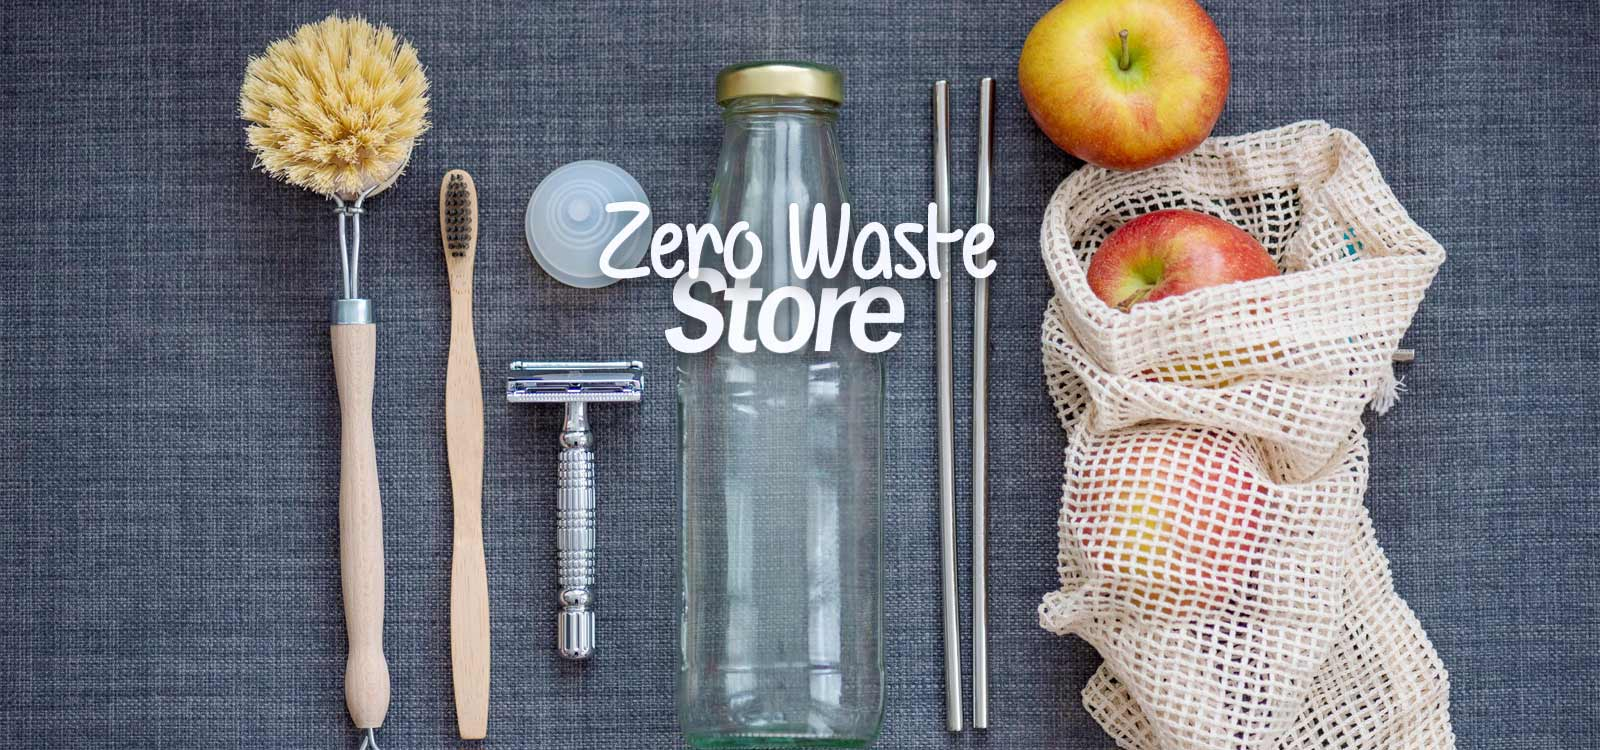 zero-waste-store-products-header